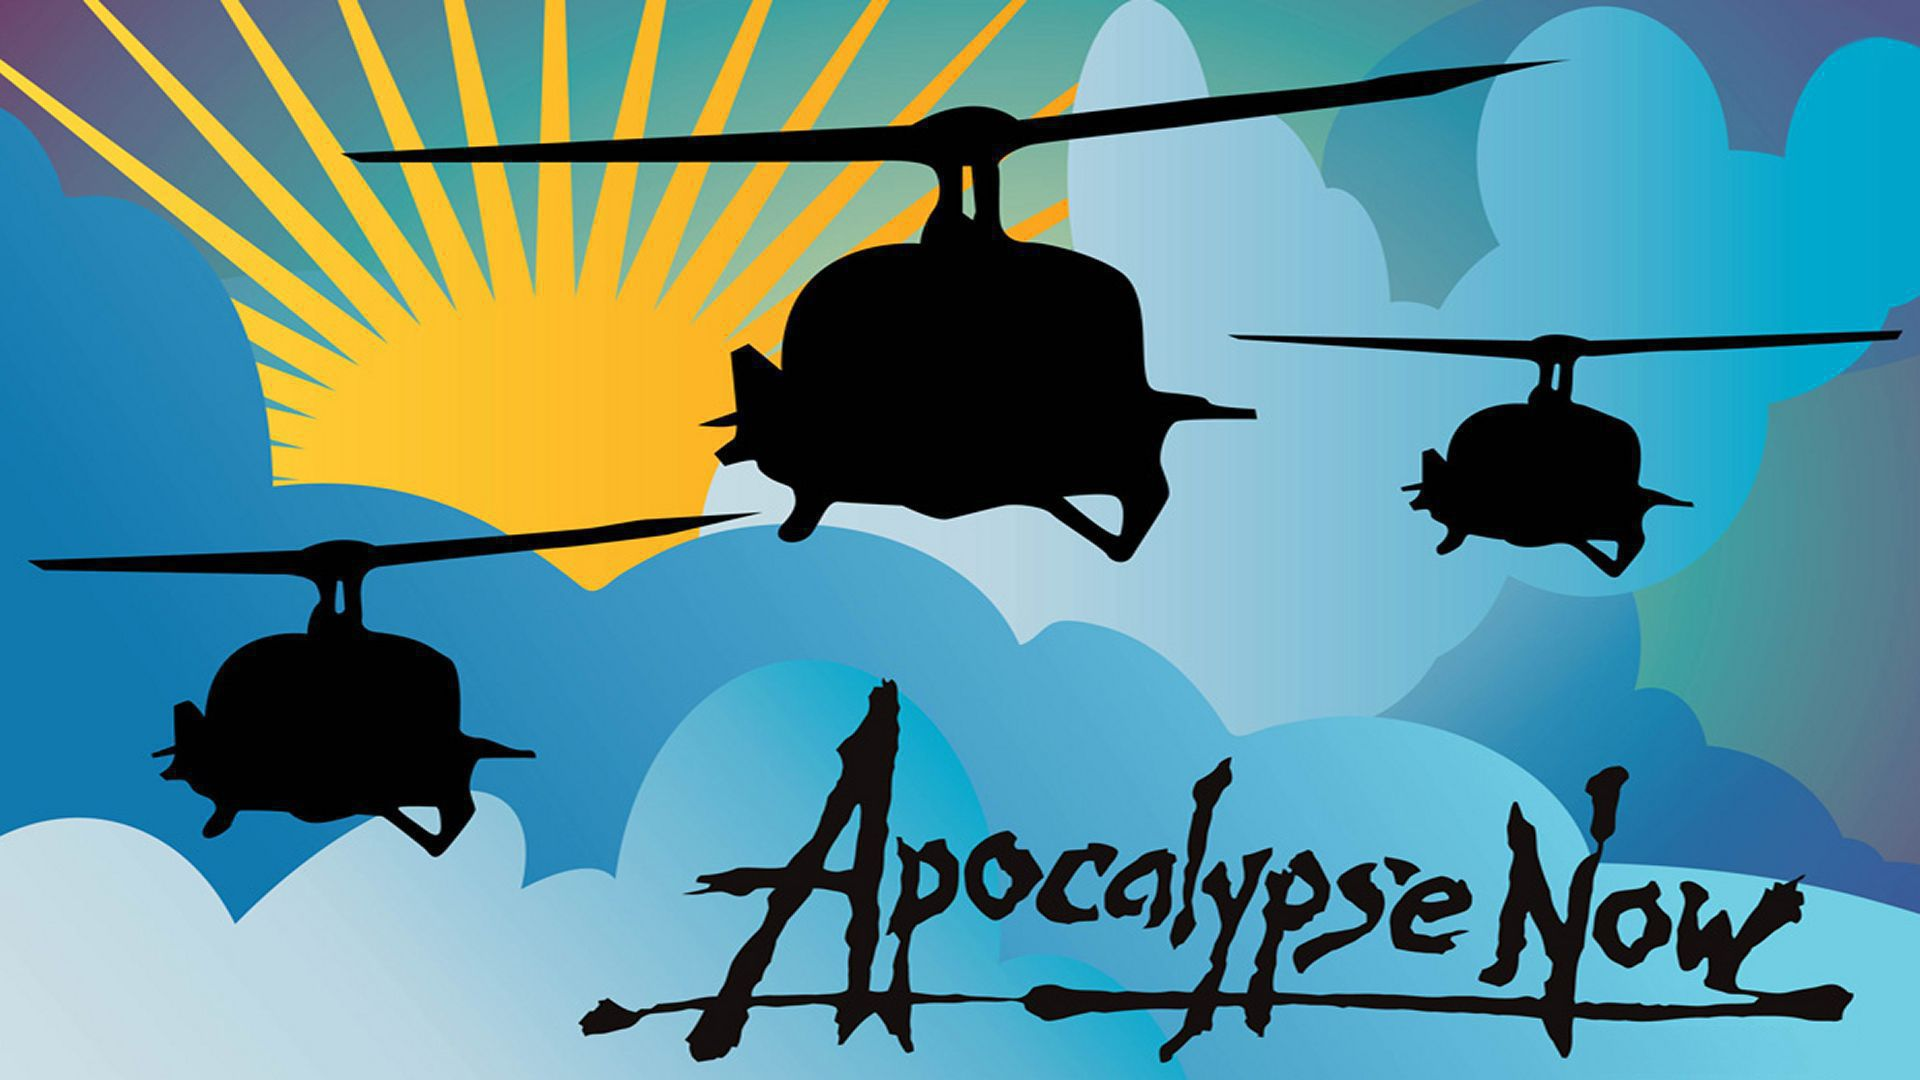 Apocalypse Now Wallpapers HD